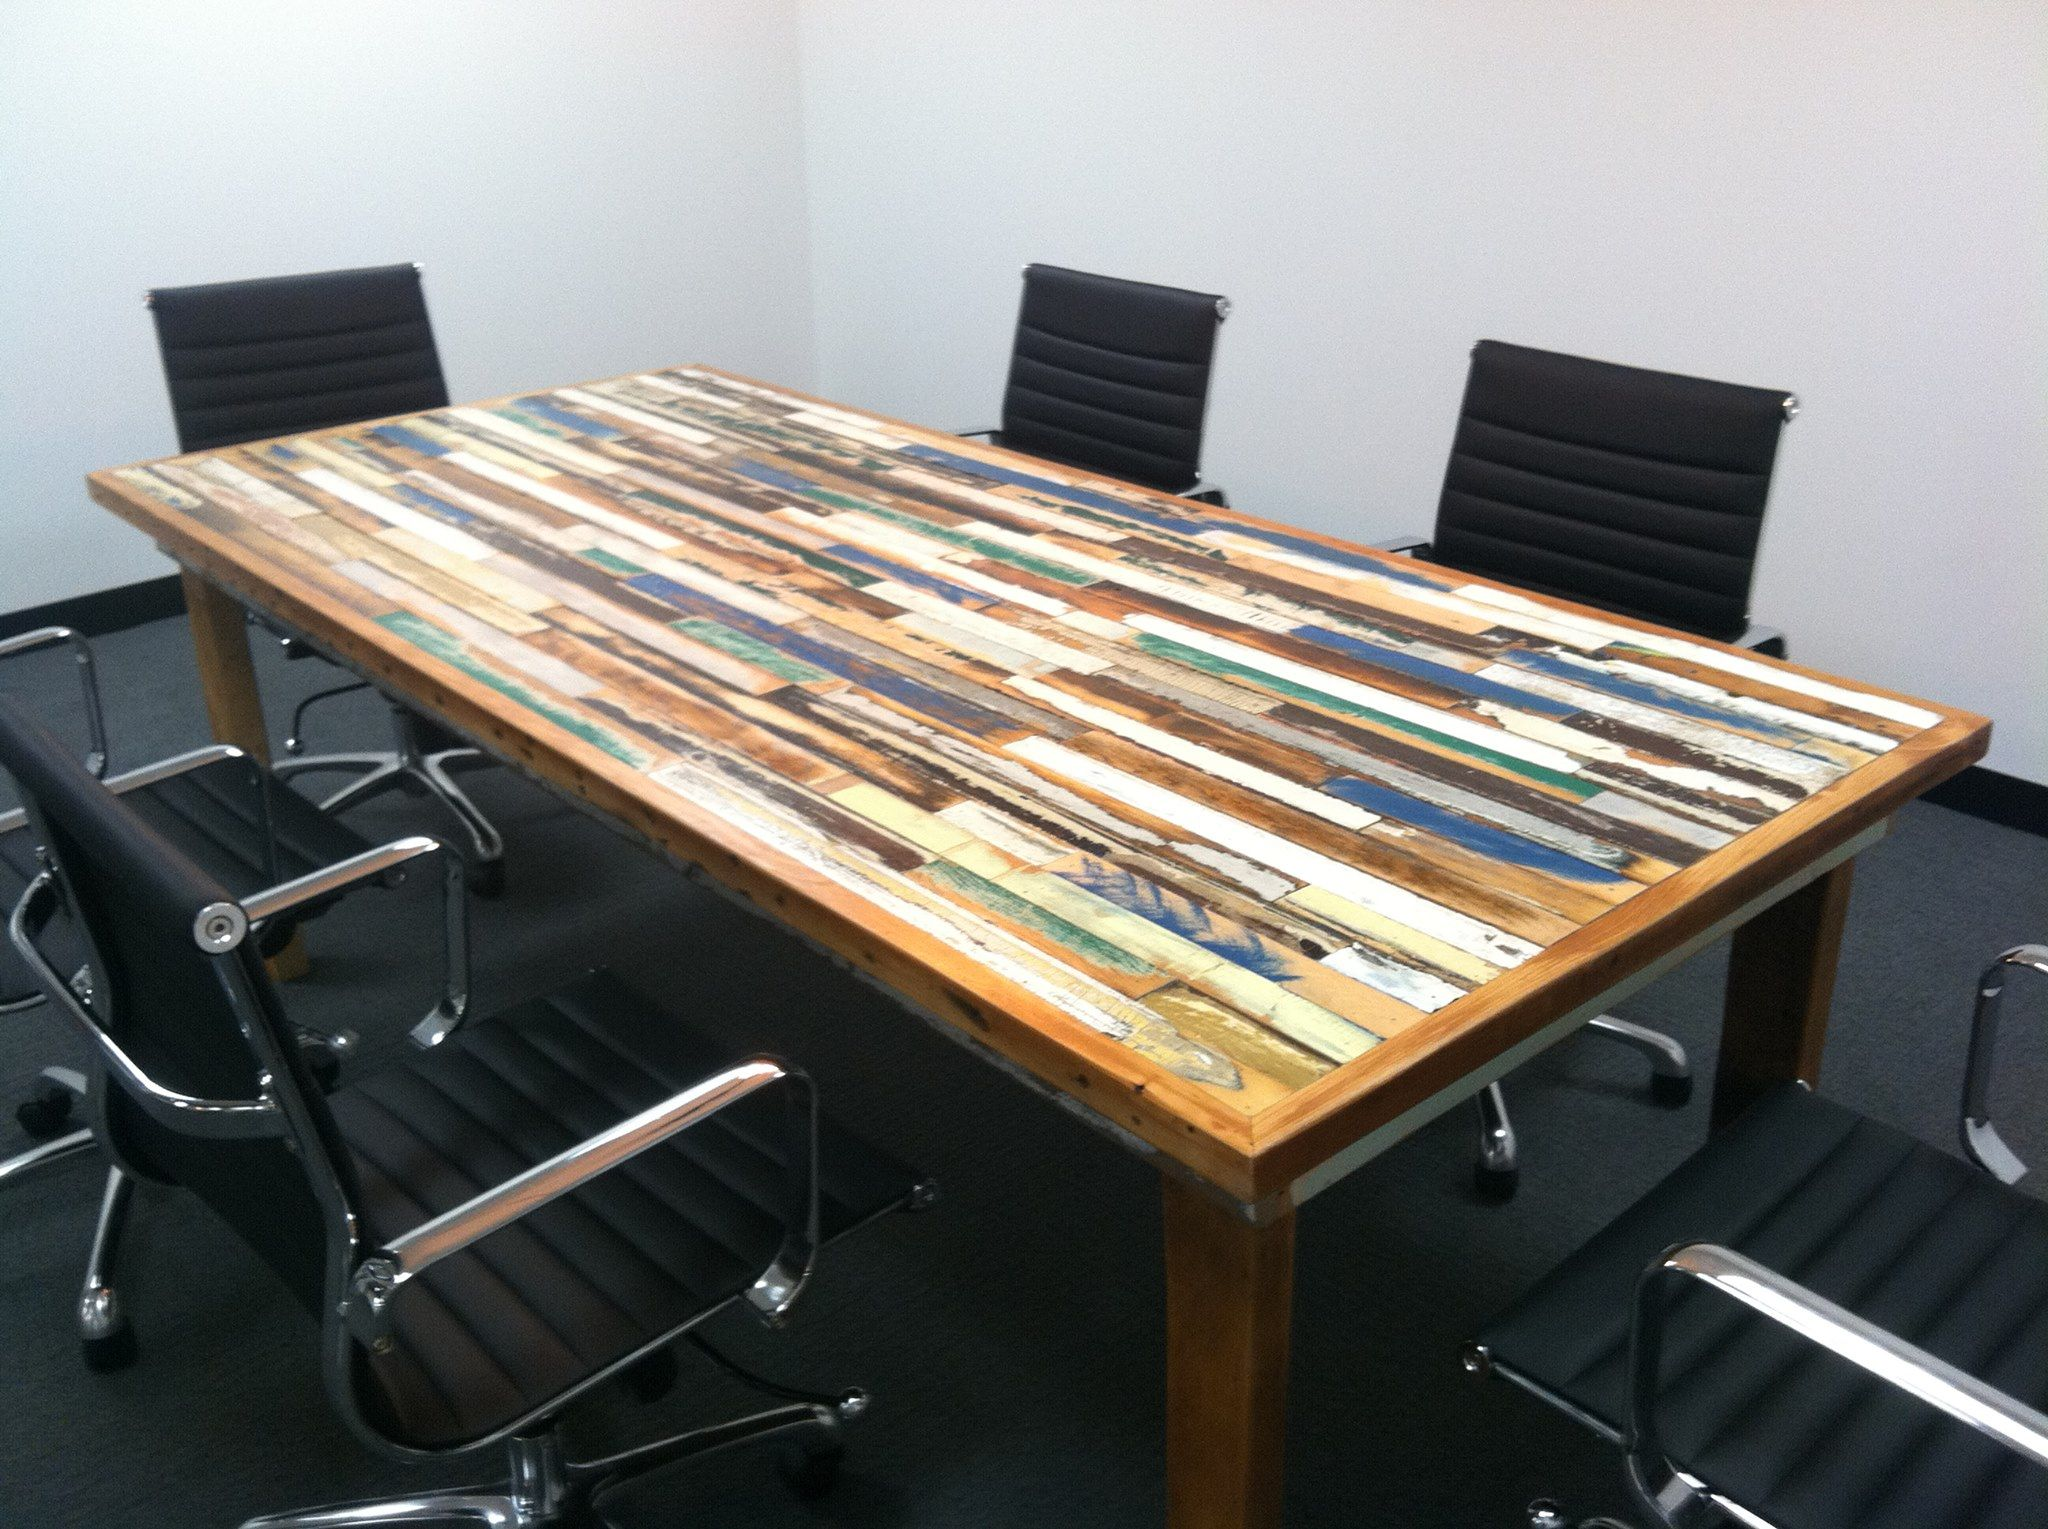 conference room table ideas. Conference Room Table Made With Window Frames Ideas F